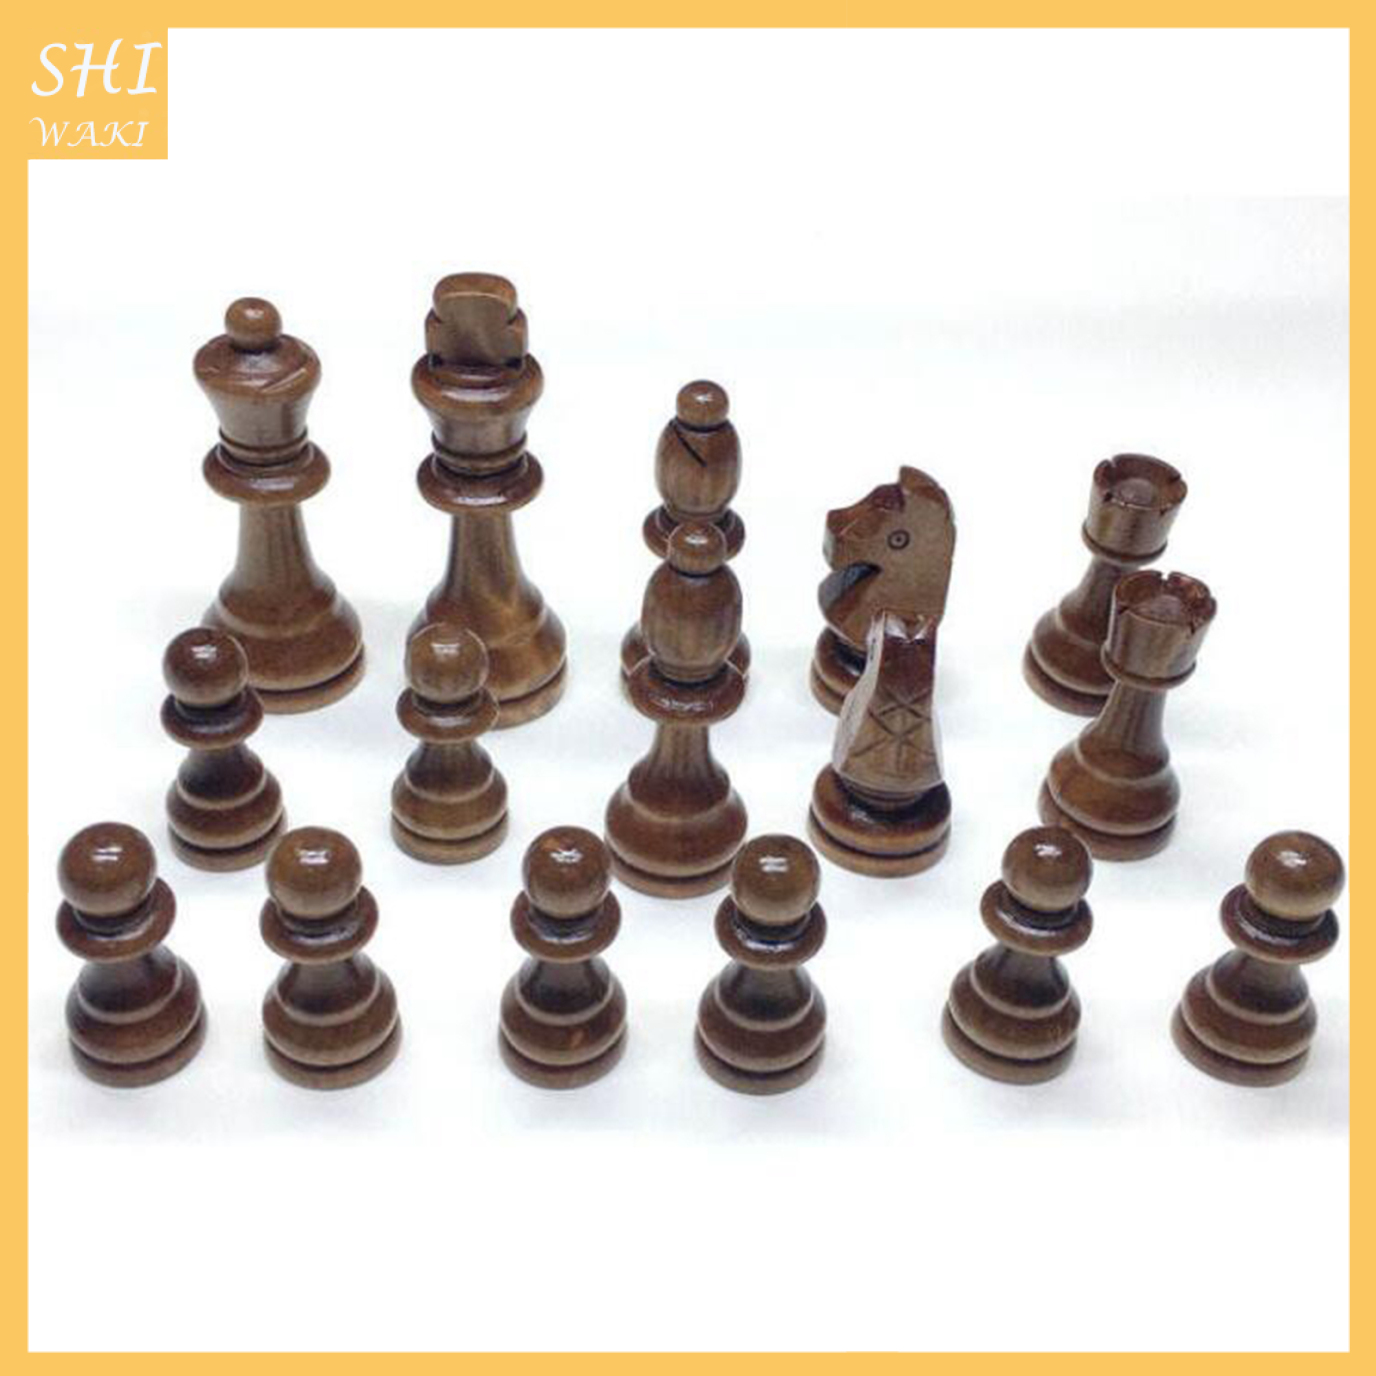 Wood Chess Pieces Chessmen International Word Chess Game Entertainment